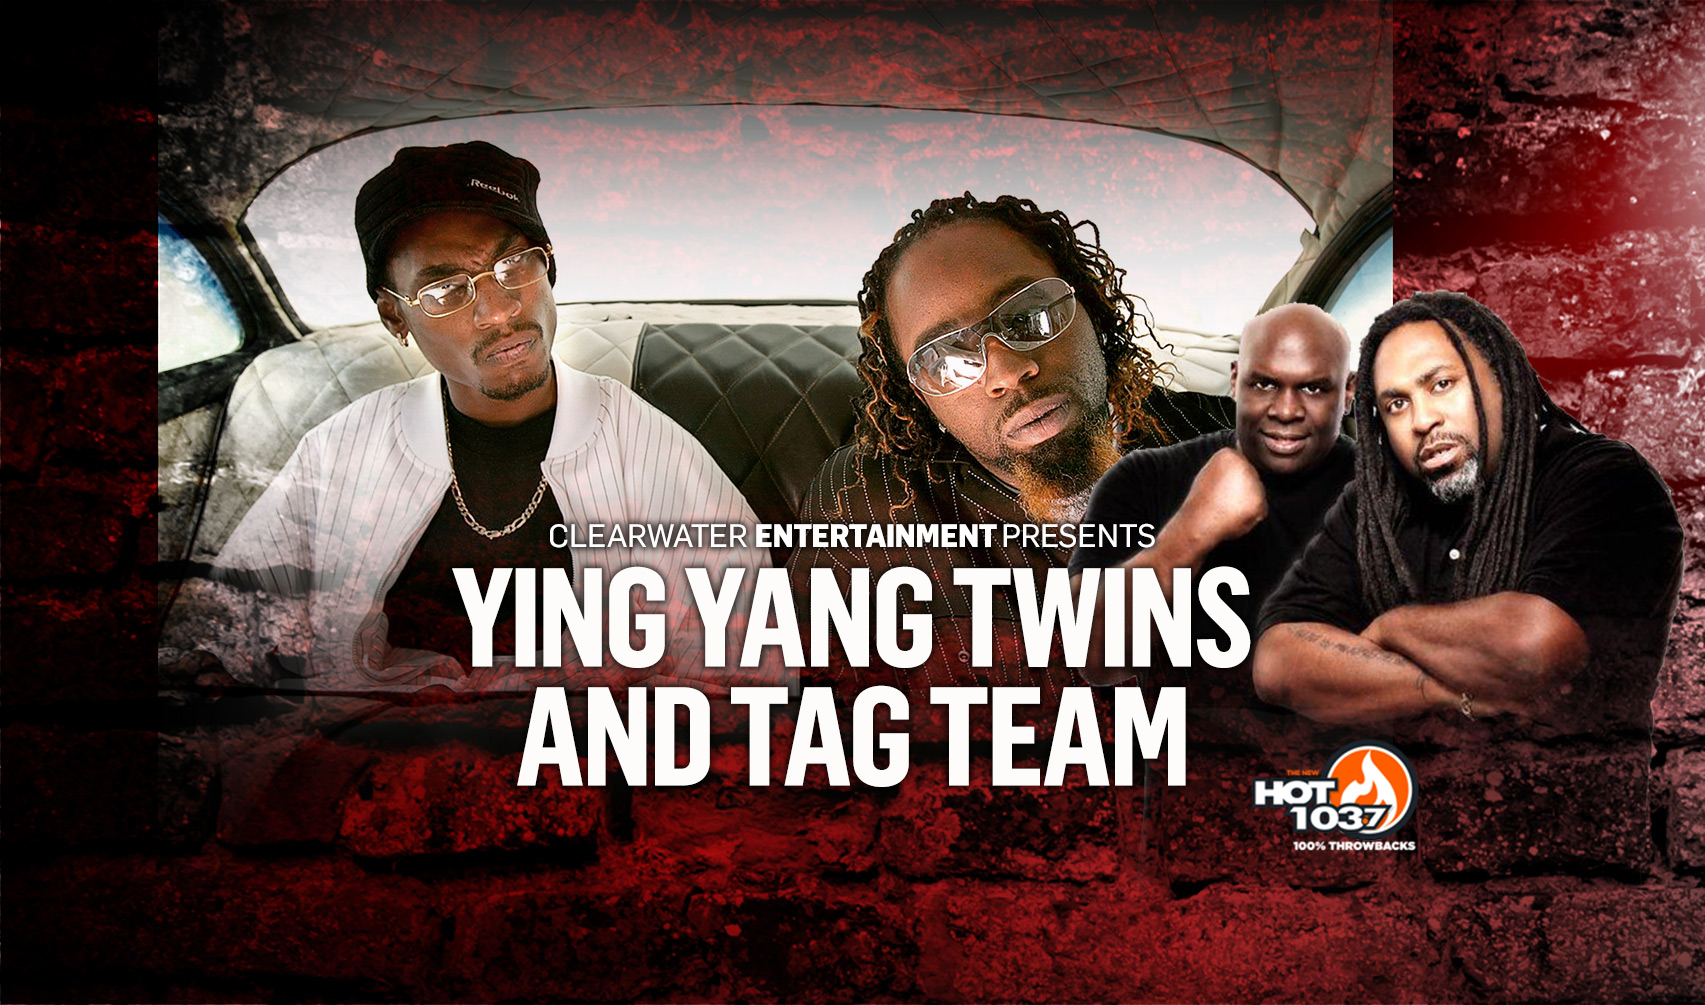 Dirty South: YIng Yang & Tag Team